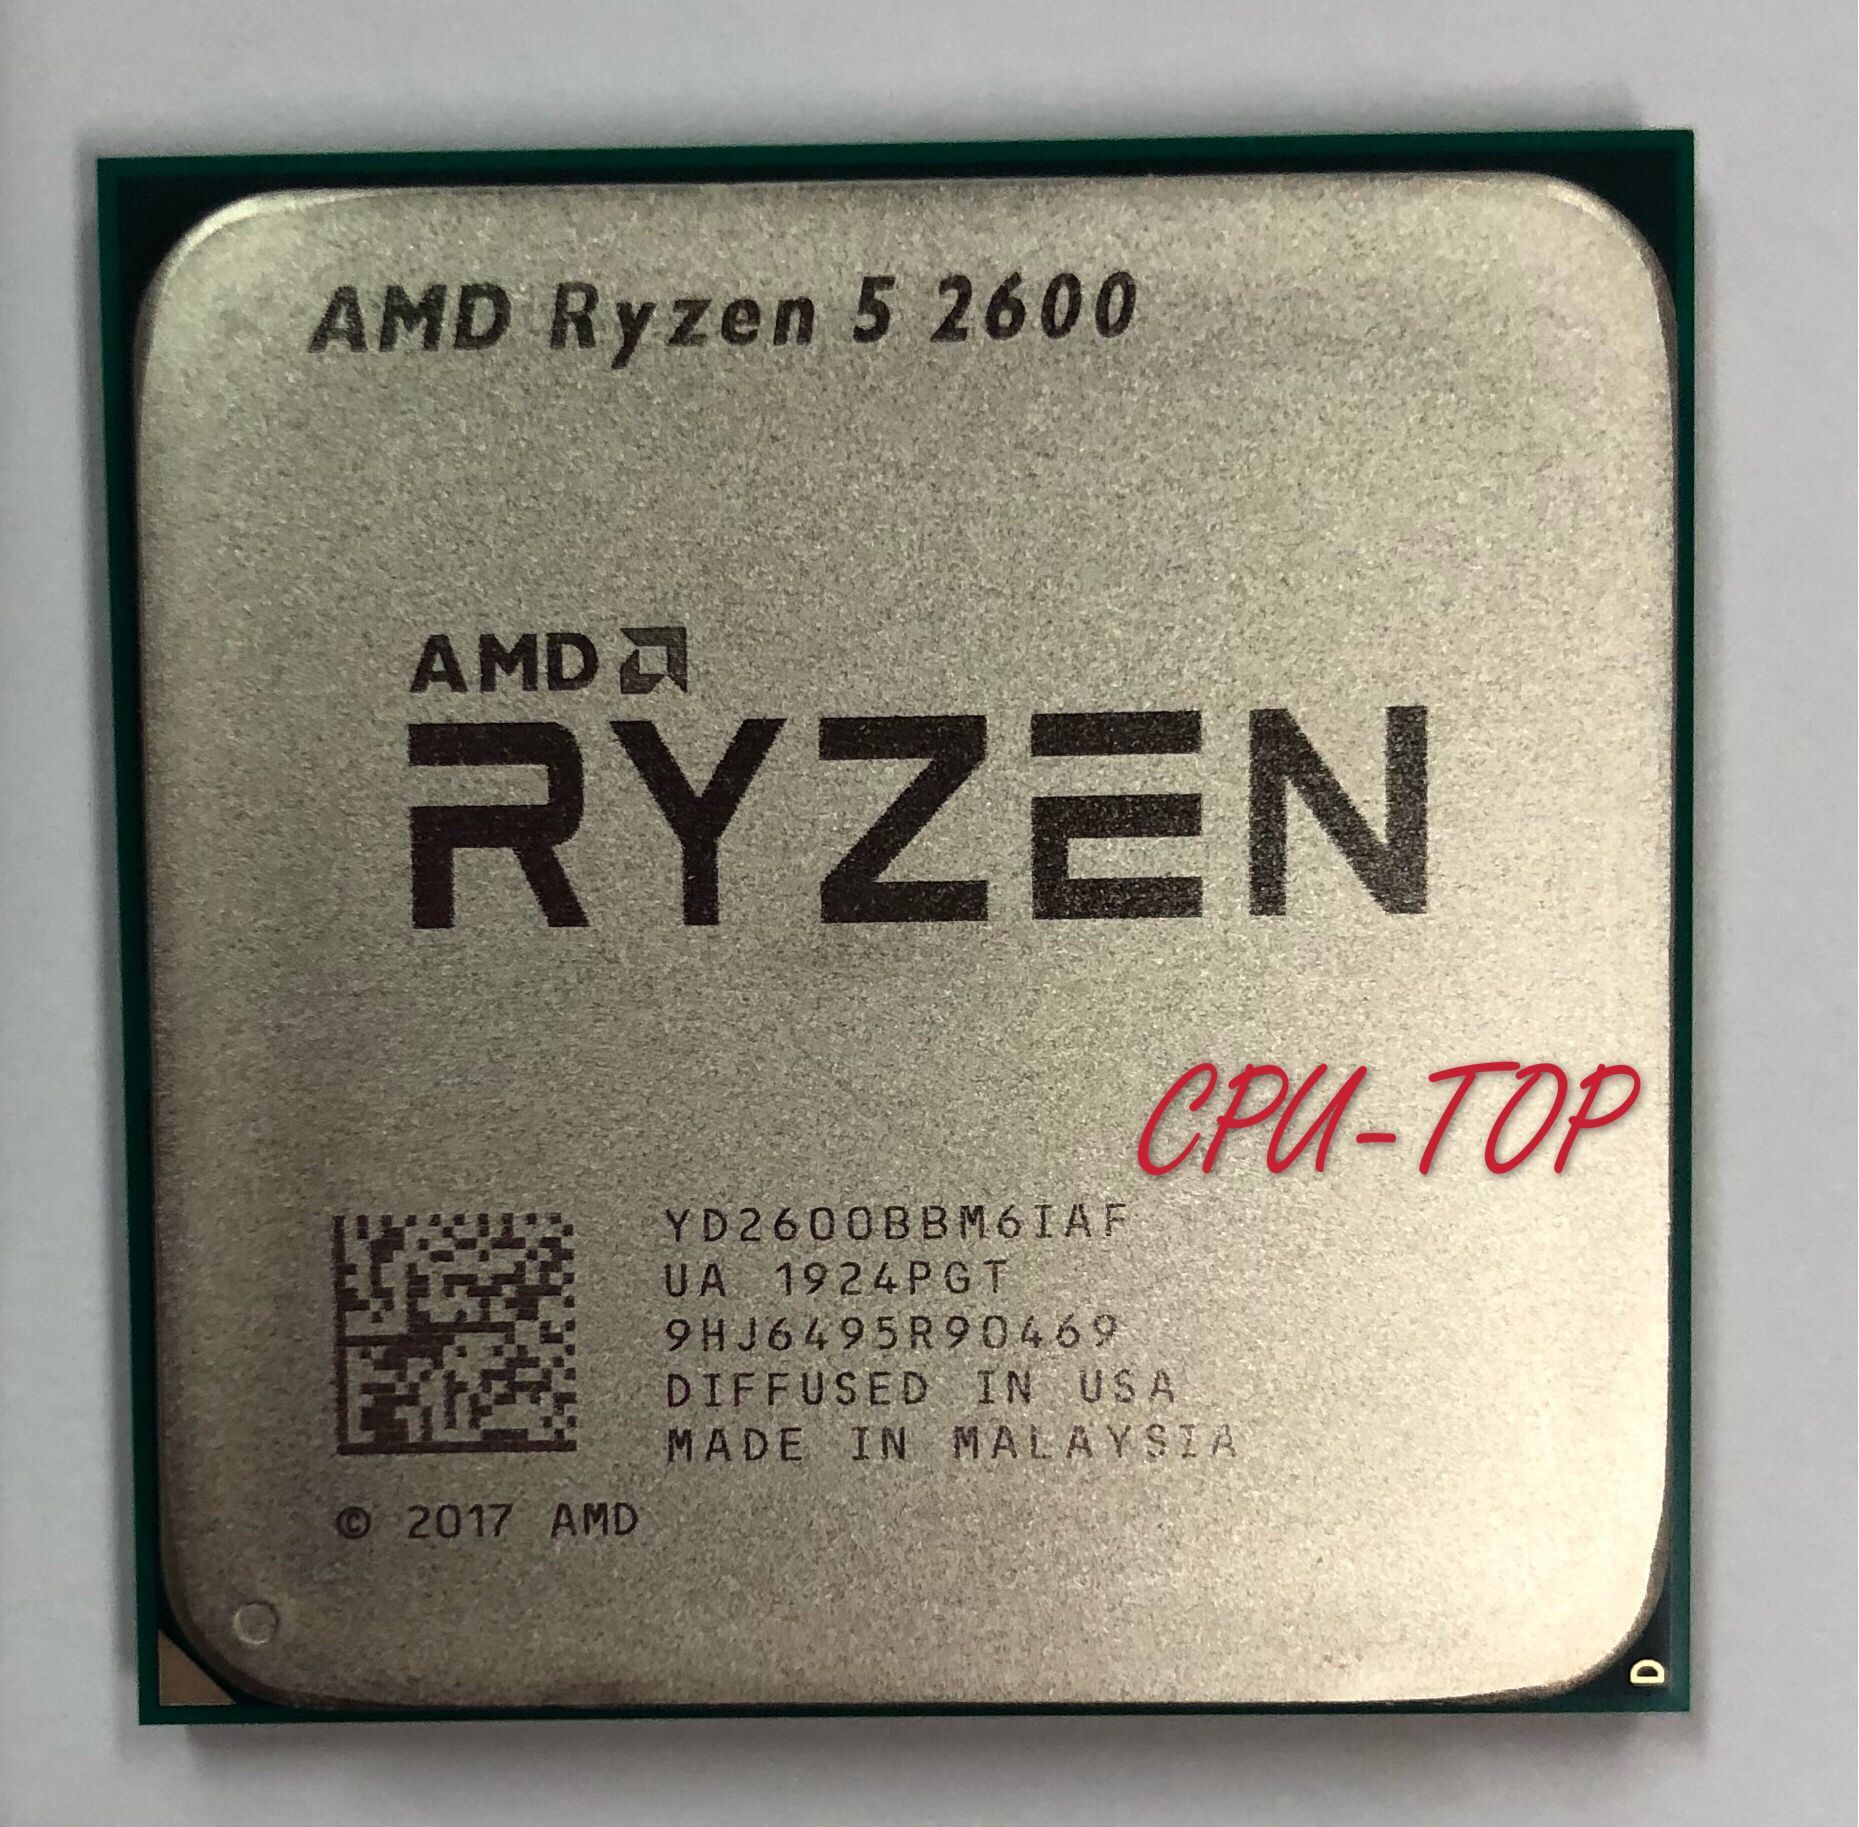 AMD Ryzen 5 2600 R5 2600 3.4 GHz Six Core Twelve Core 65W CPU Processor YD2600BBM6IAF Socket AM4|CPUs| - AliExpress